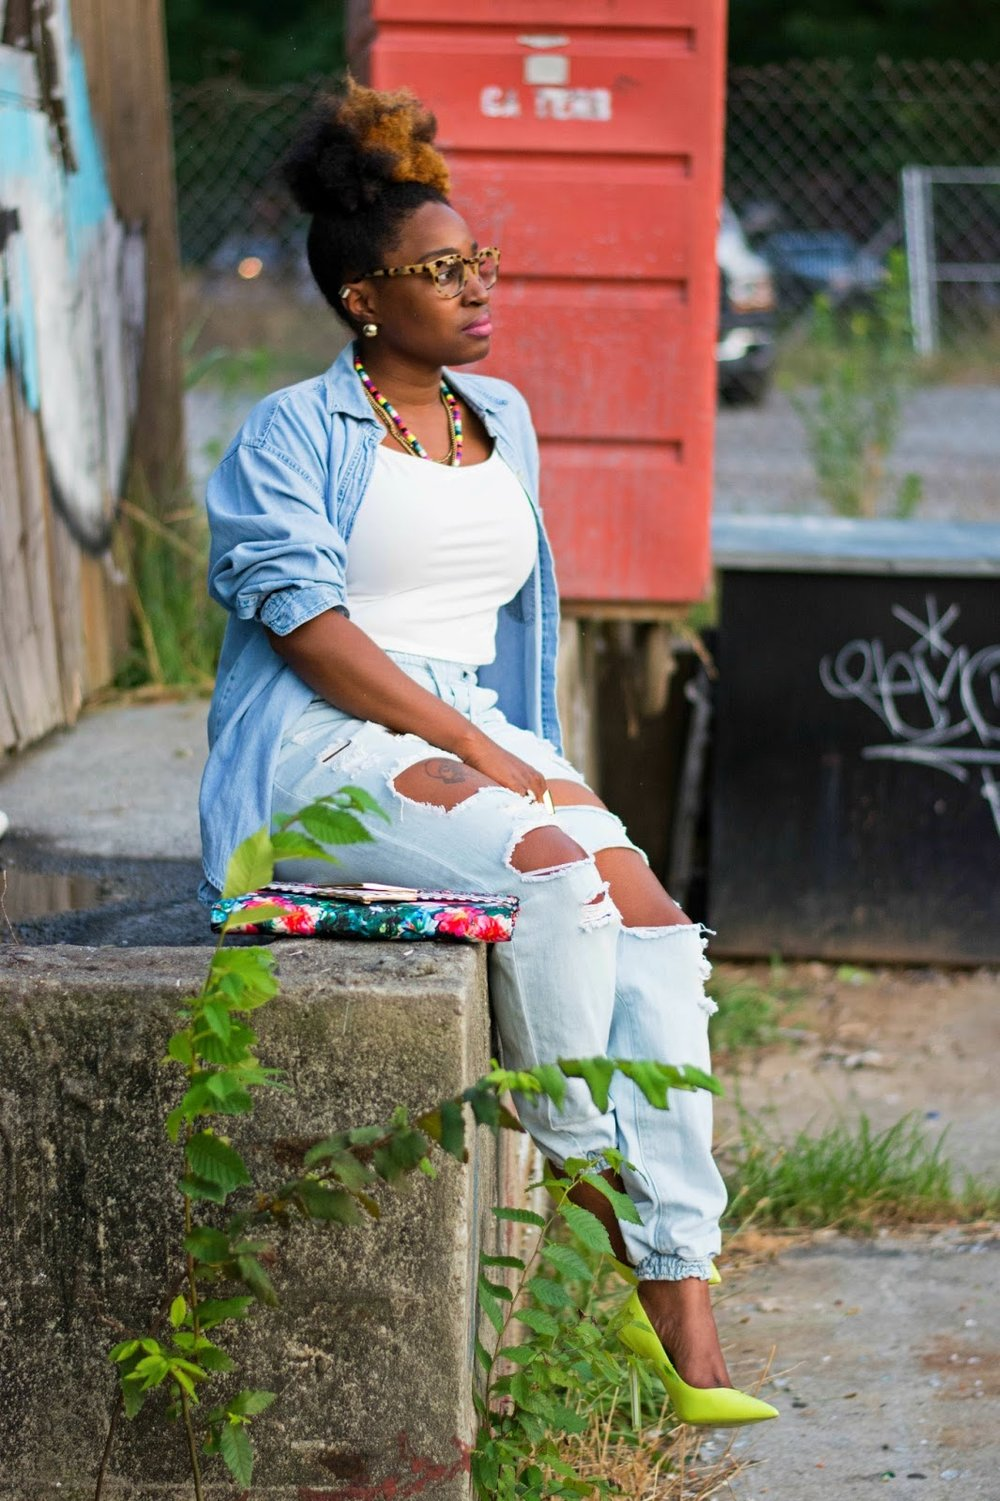 Atlanta blogger, Atlanta style, Style blogger, Atlanta stylist, Street style, Distressed denim, Denim on denim, Aldo clutch, thrifted fashion, Thrifting Atlanta, Mixed prints, Yellow pumps, Plato's closet Duluth, Oversized shirt, Natural girls, Stylist, Crop top, Summer trends, Black bloggers, Black style bloggers, Black girls rock, Black girl magic, Melodie Stewart, Black girls killing it